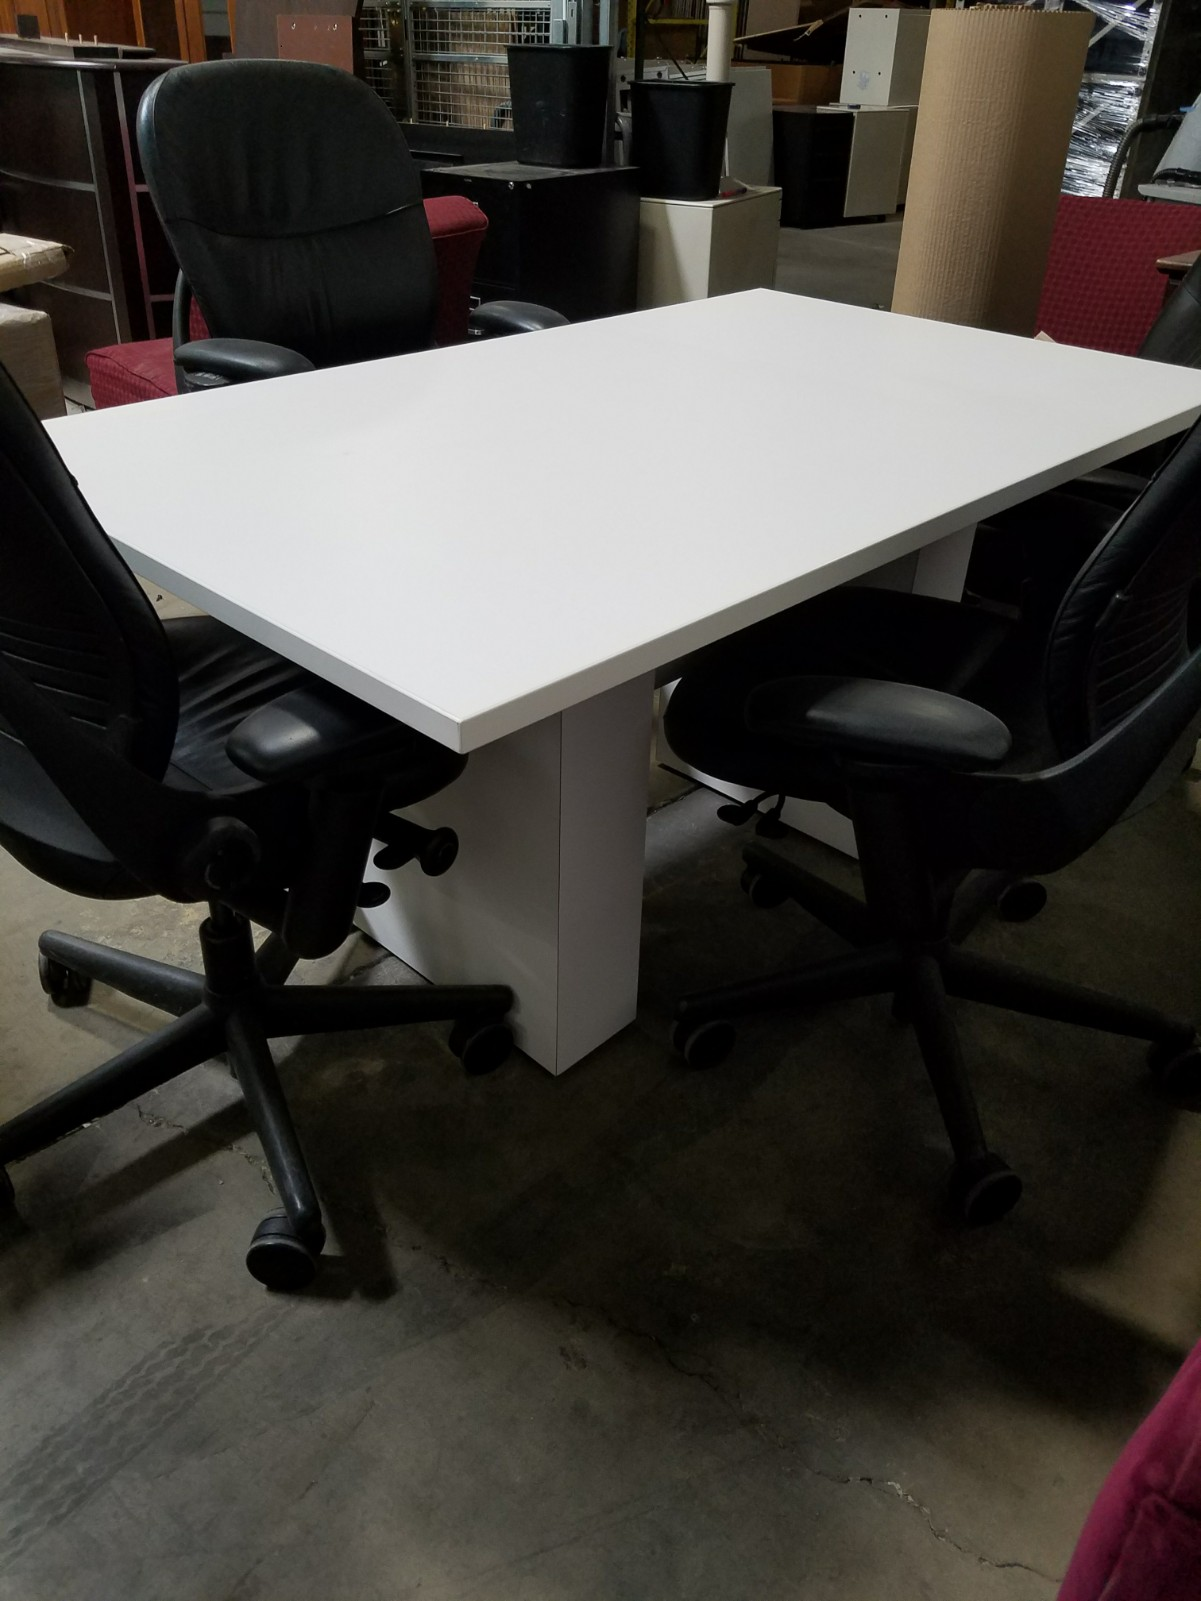 Genial 3u2032 X 5u2032 White Laminate Conference Table U2013 SOLD